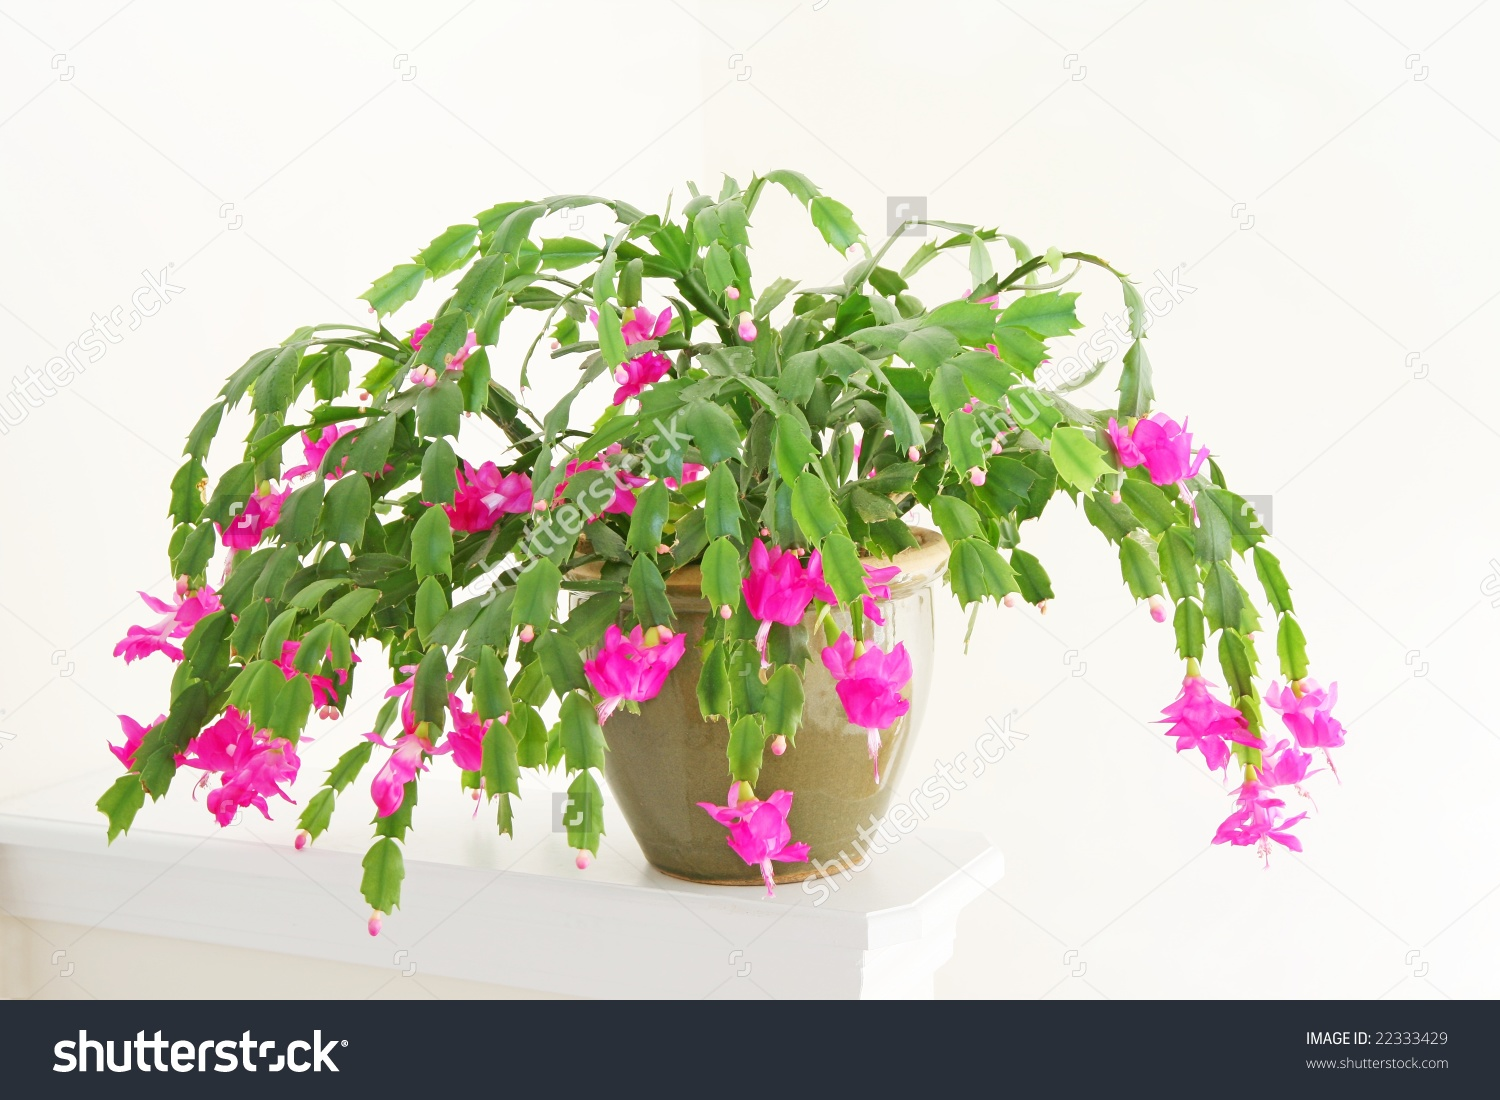 Christmas Cactus Clipart.Zygocactus Clipart 20 Free Cliparts Download Images On